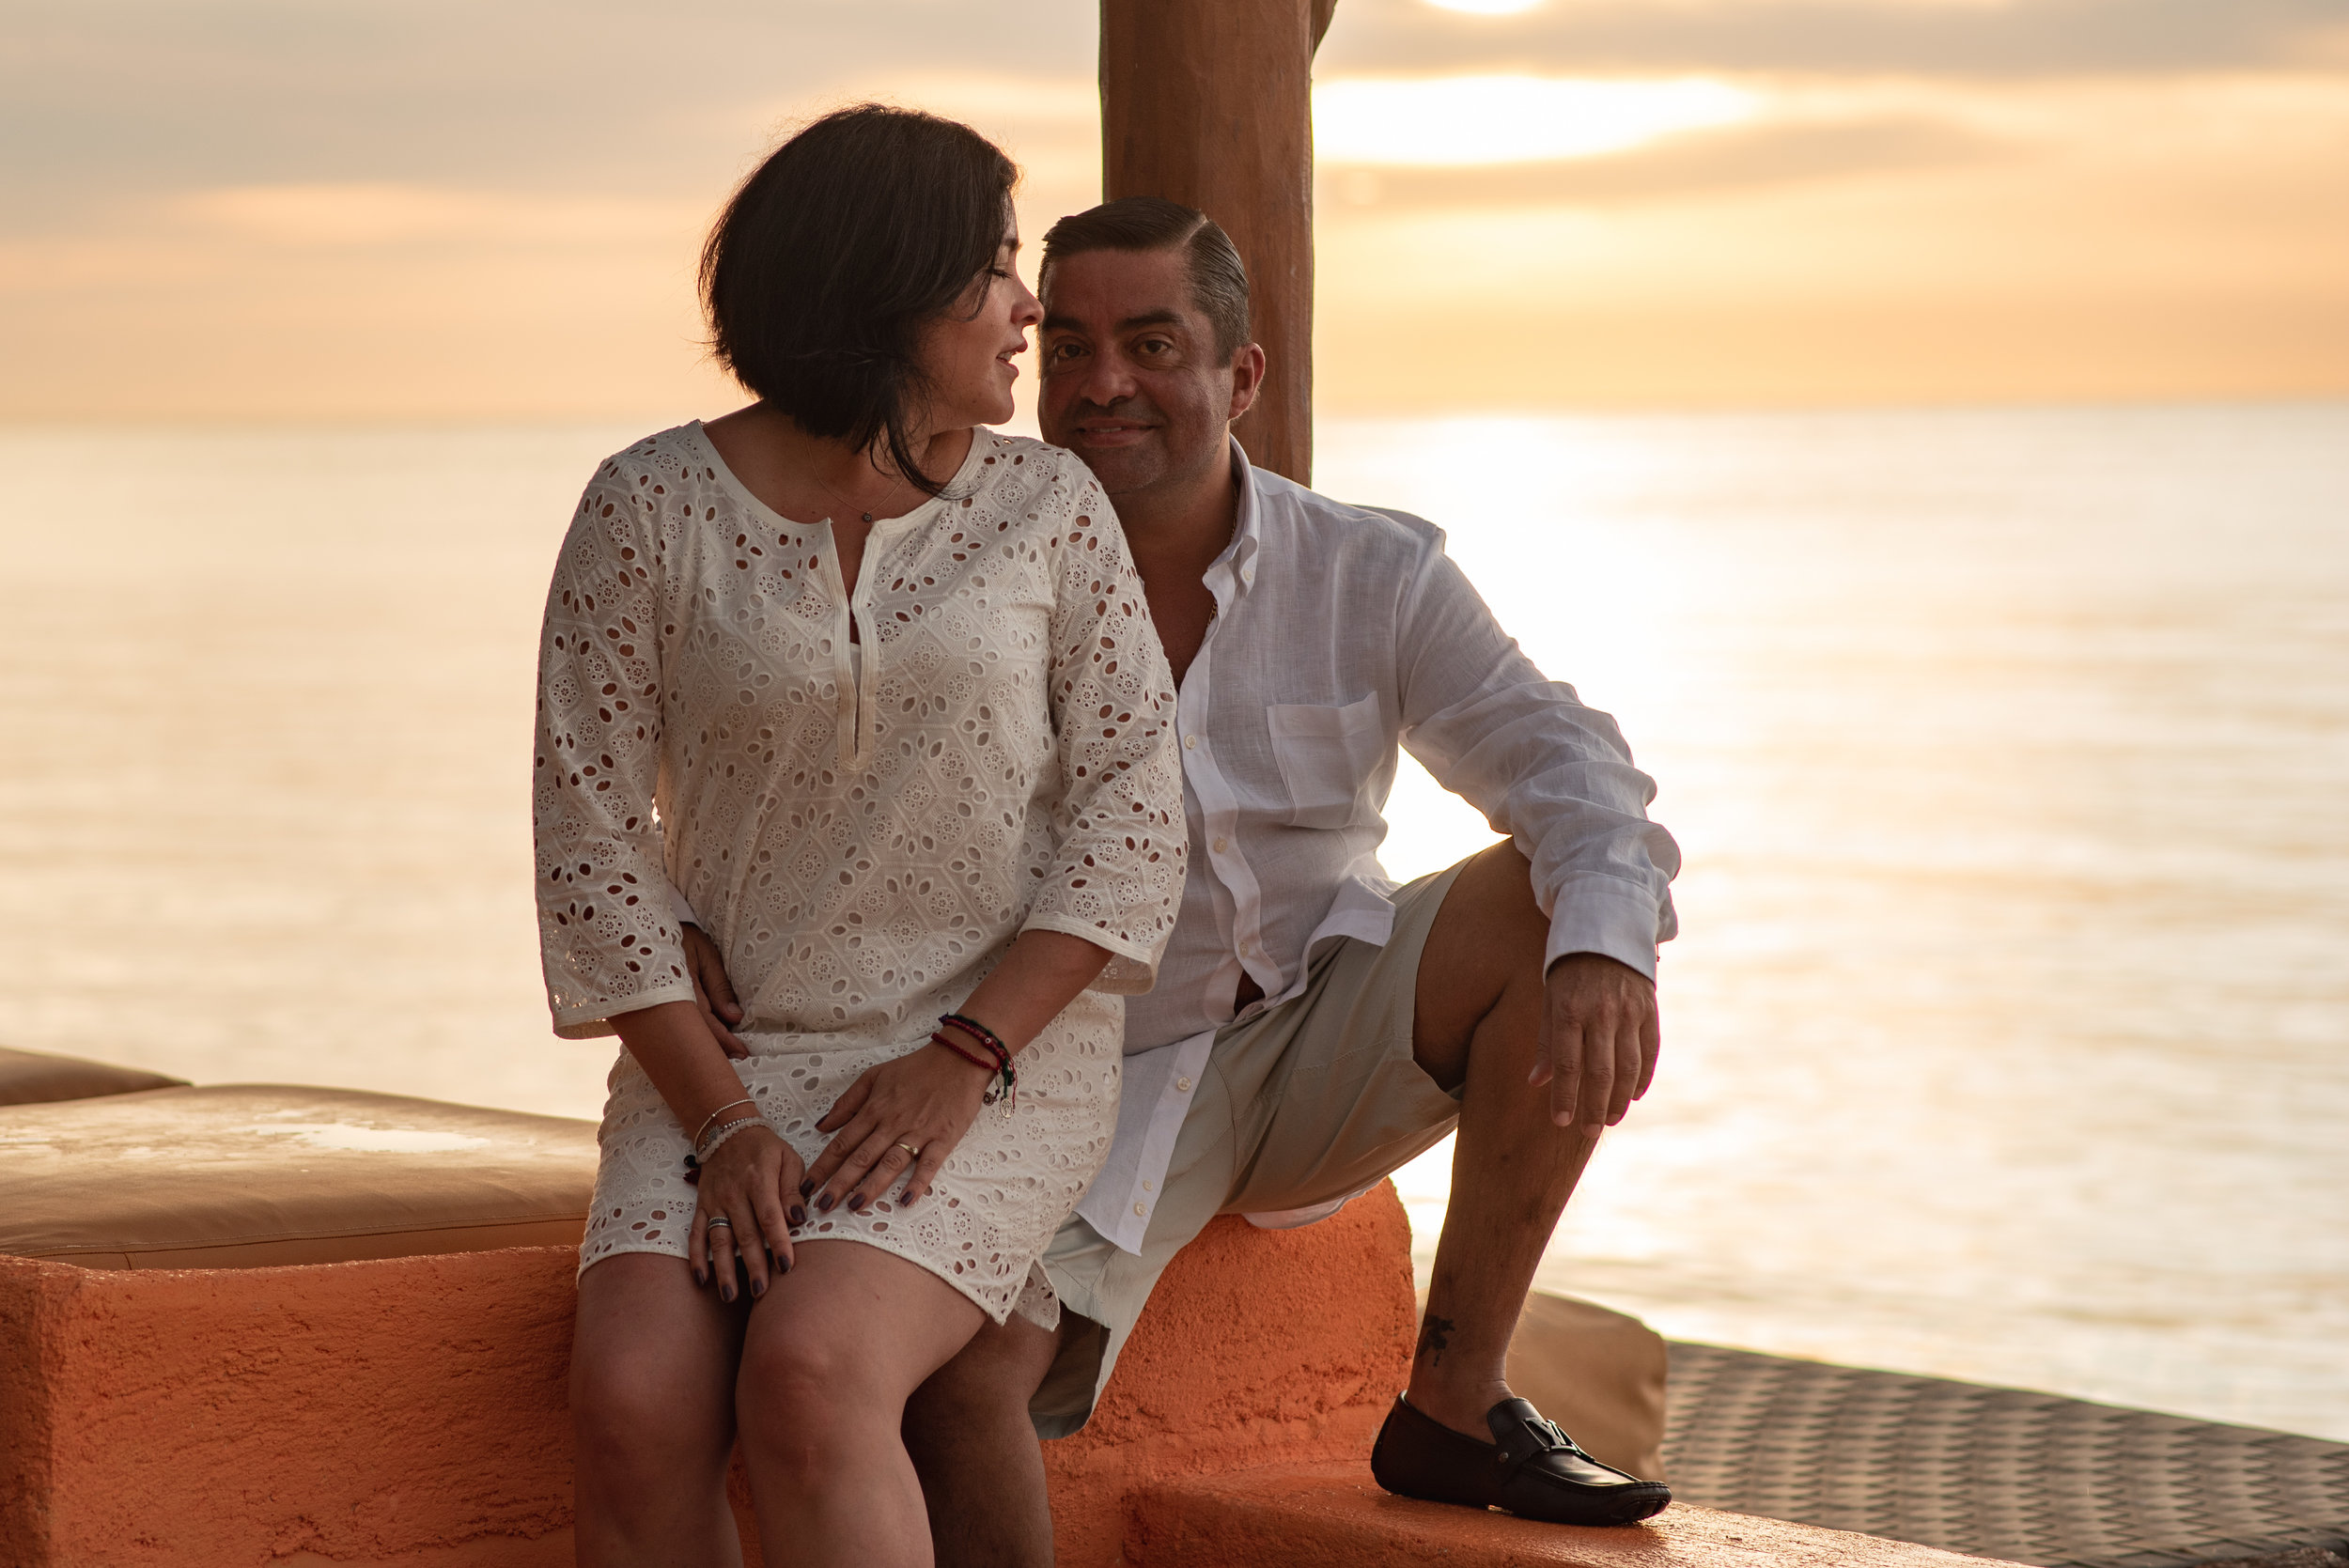 Holbox couples photoshoots f&f series 3 by @emmanuelphotoartist